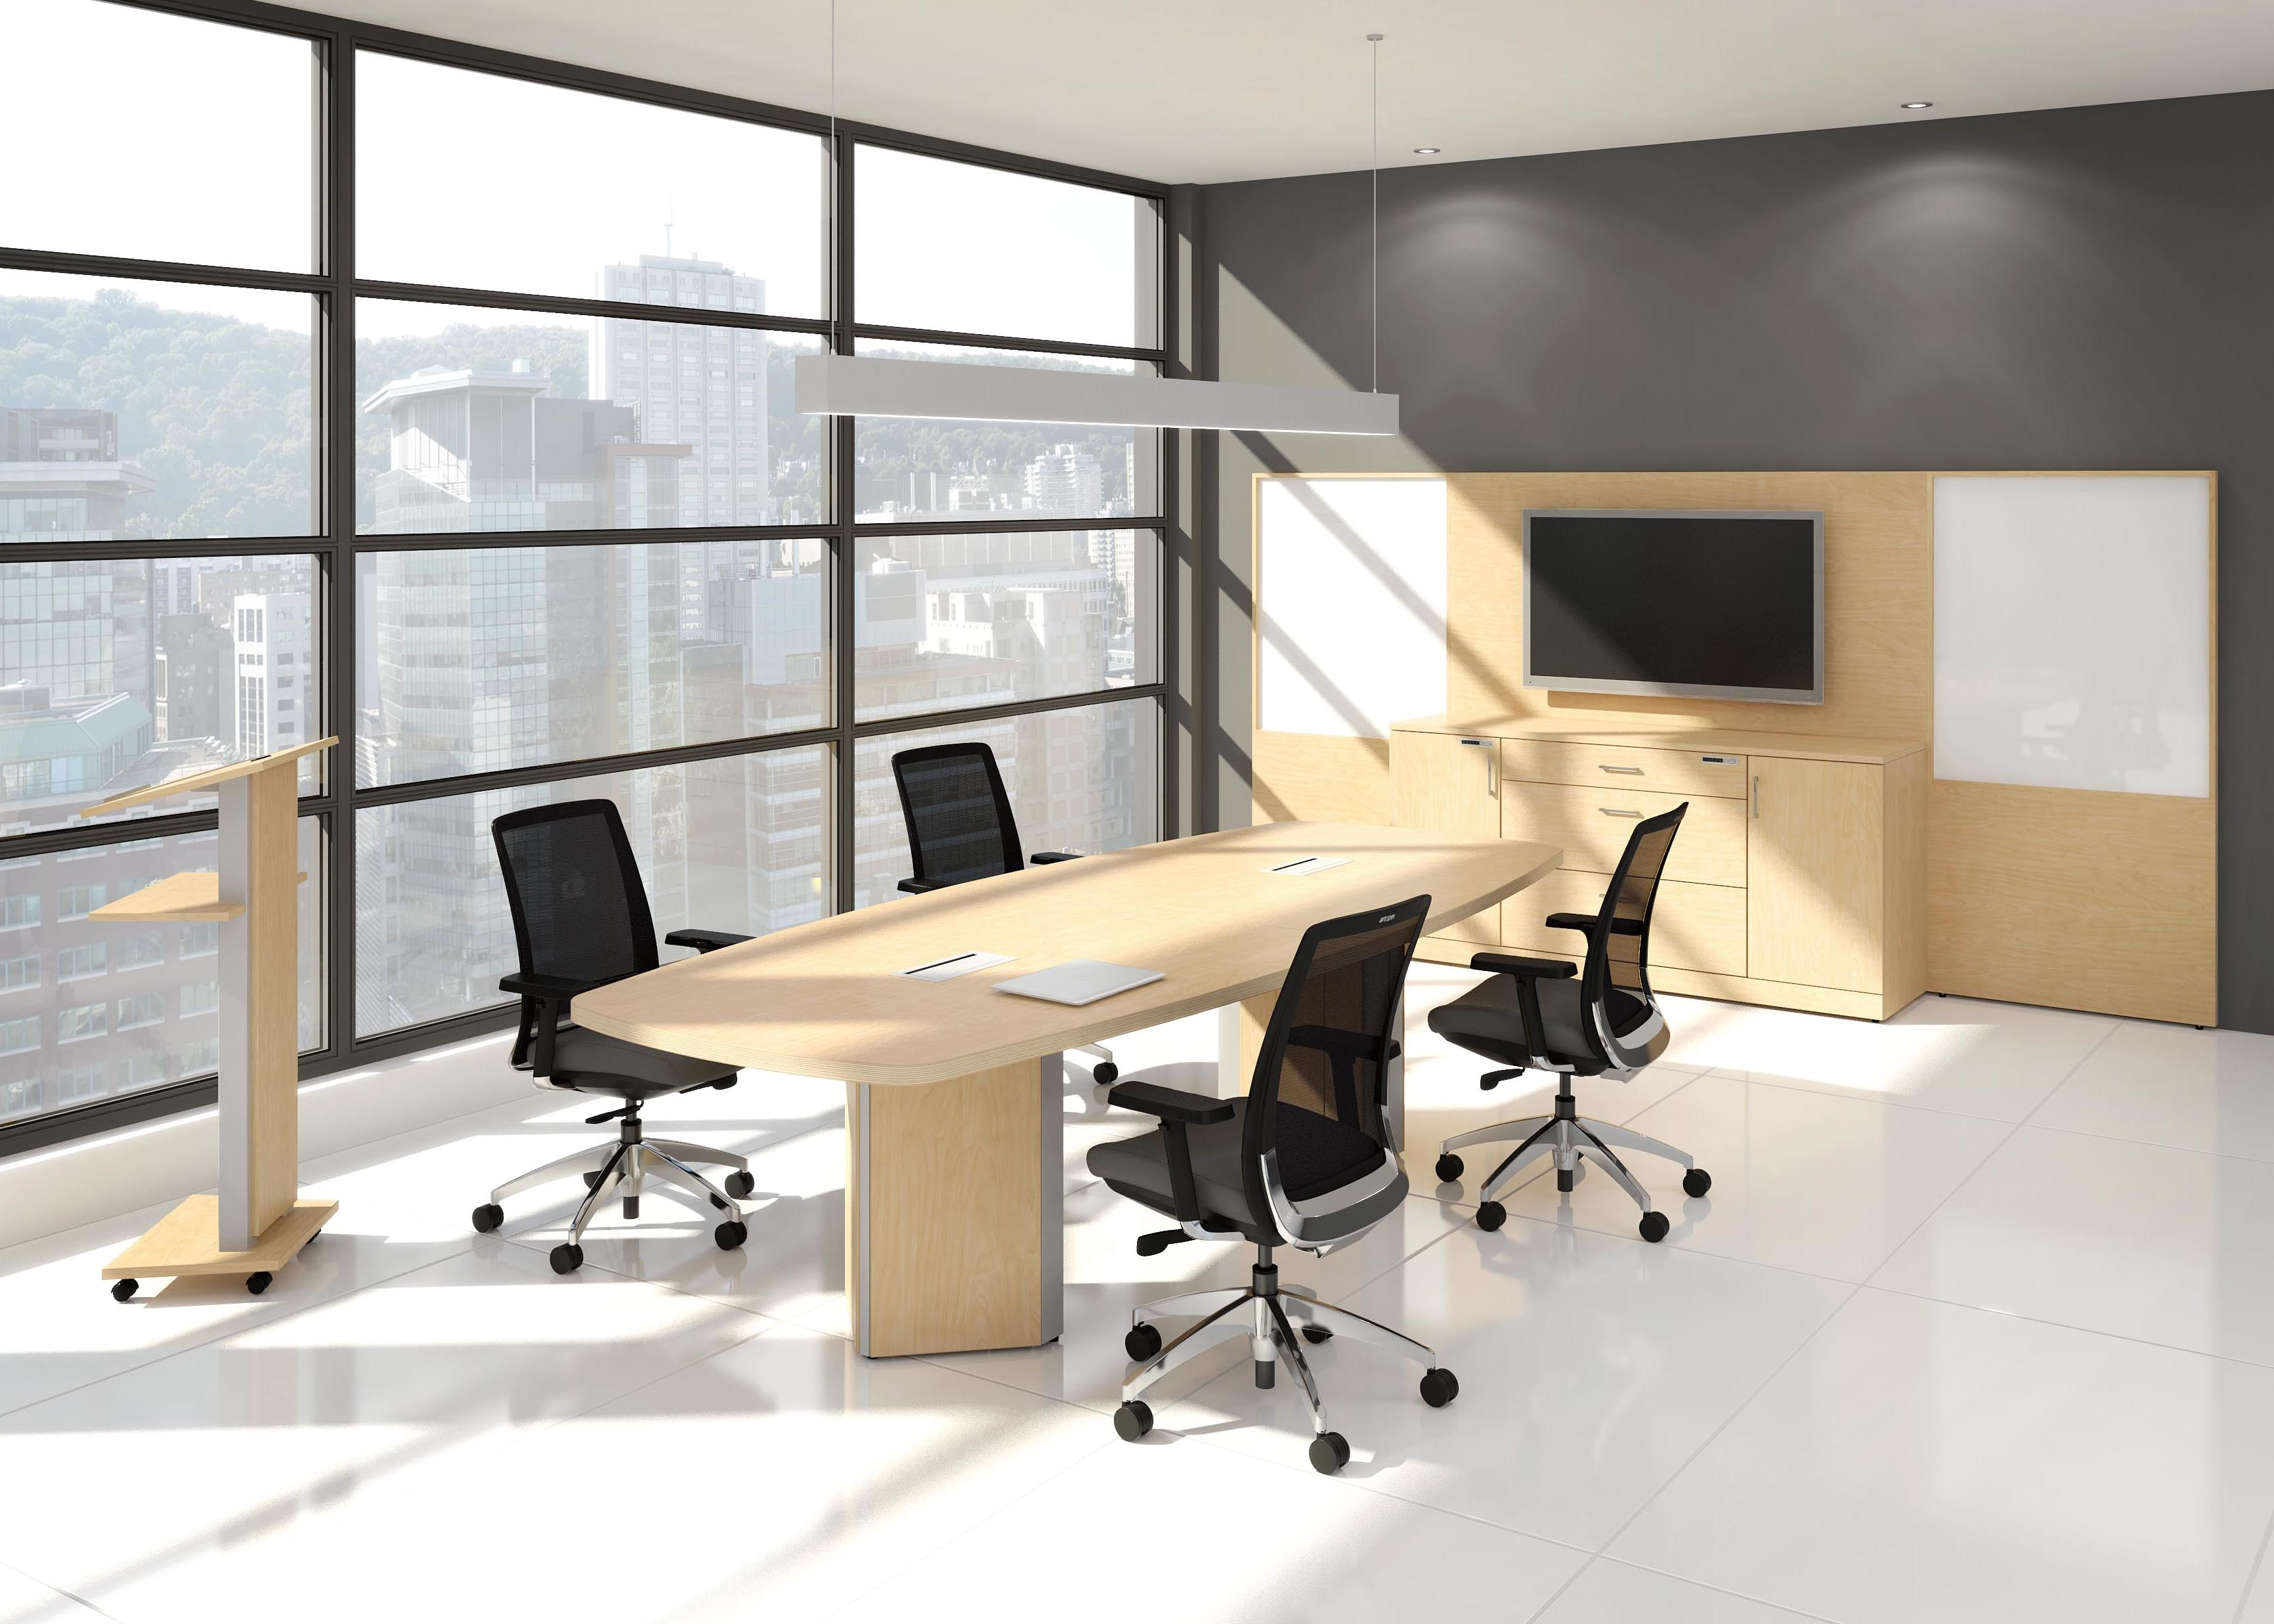 Wondrous Take Off Series Boardroom Tables Buy Rite Business Home Remodeling Inspirations Propsscottssportslandcom